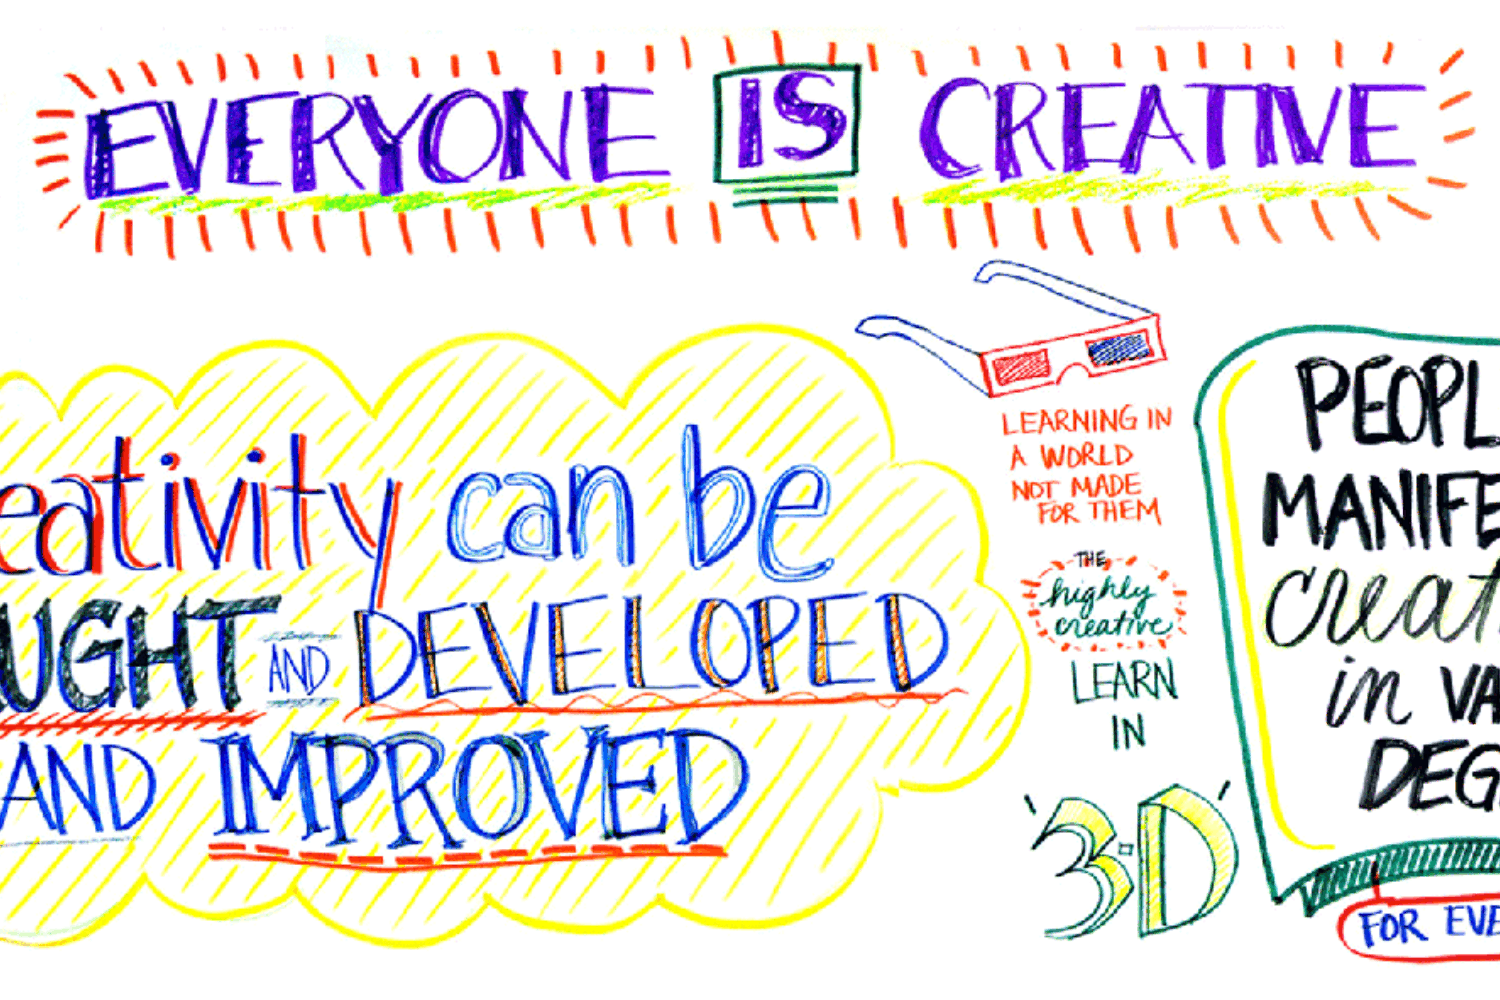 Ten Ways to Engage Students Using Graphics and Color